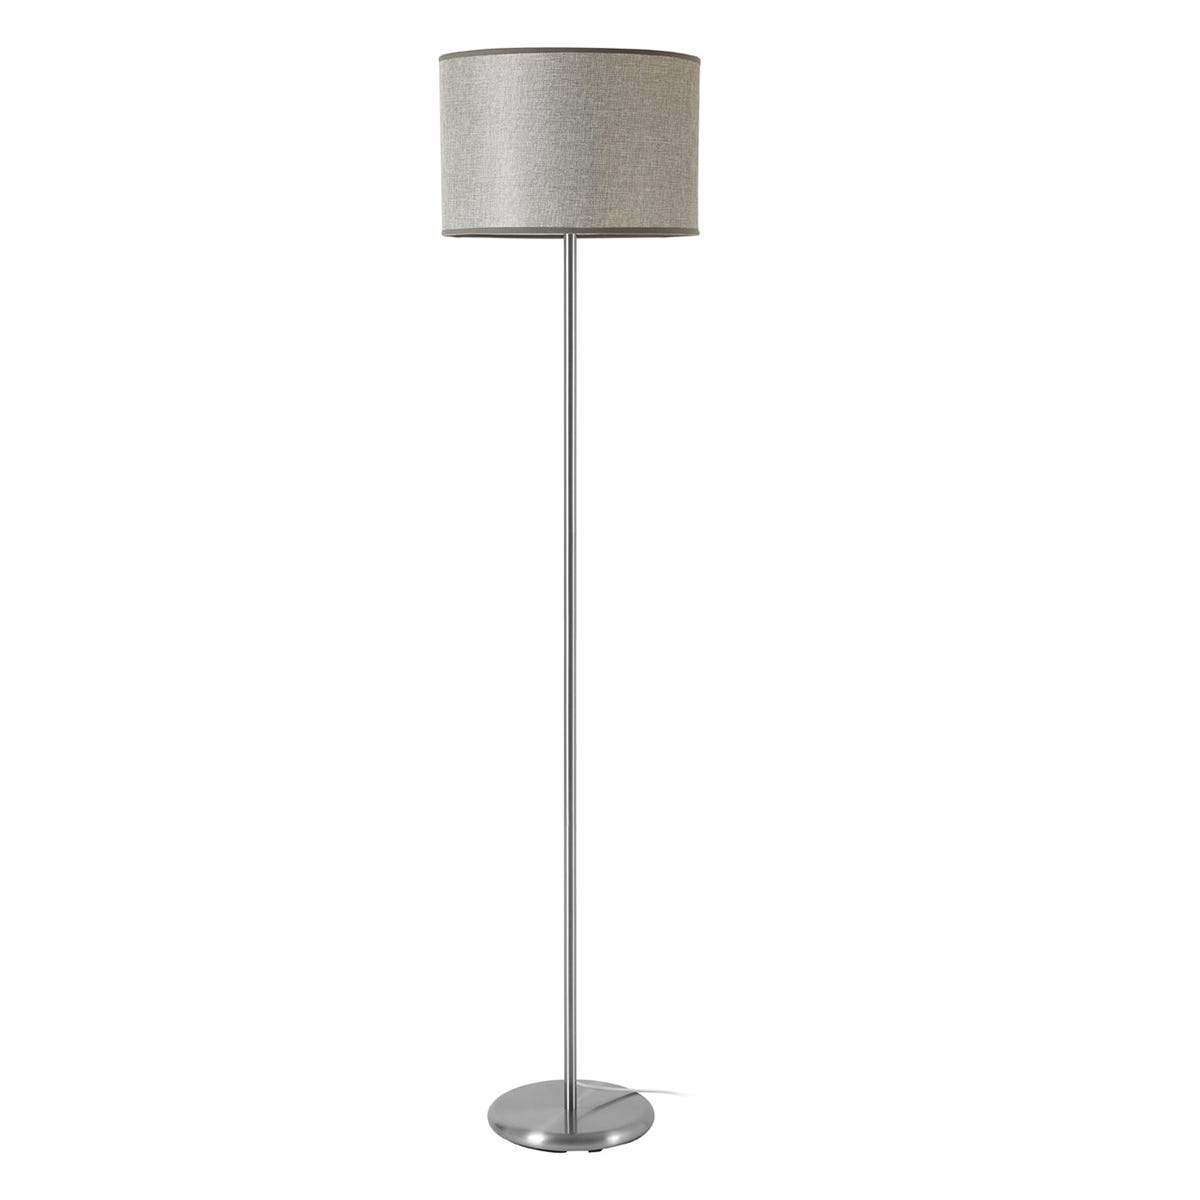 Premier Housewares Forma Floor Lamp in Chrome Effect with Grey Waffle Effect Shade